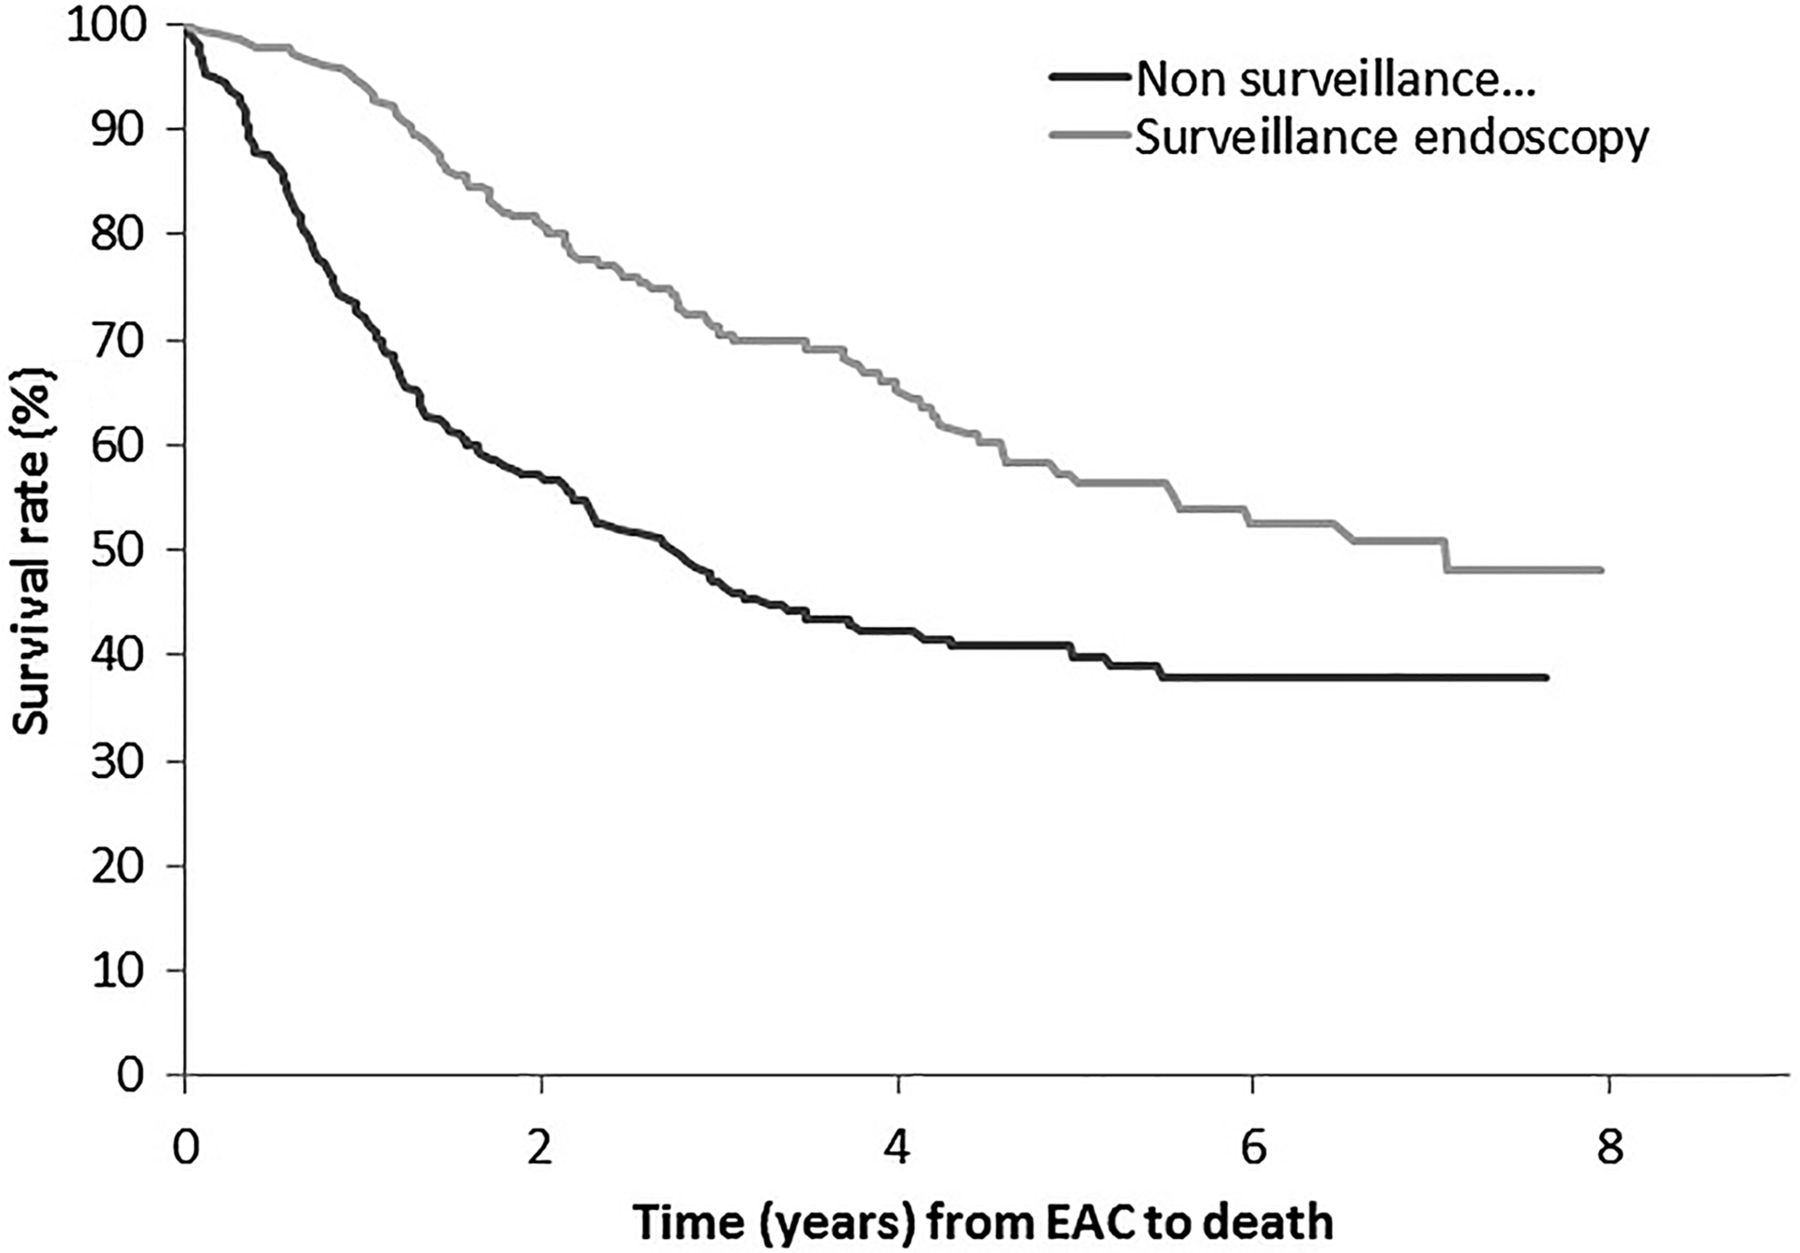 Surveillance endoscopy is associated with improved outcomes of download figure ccuart Choice Image